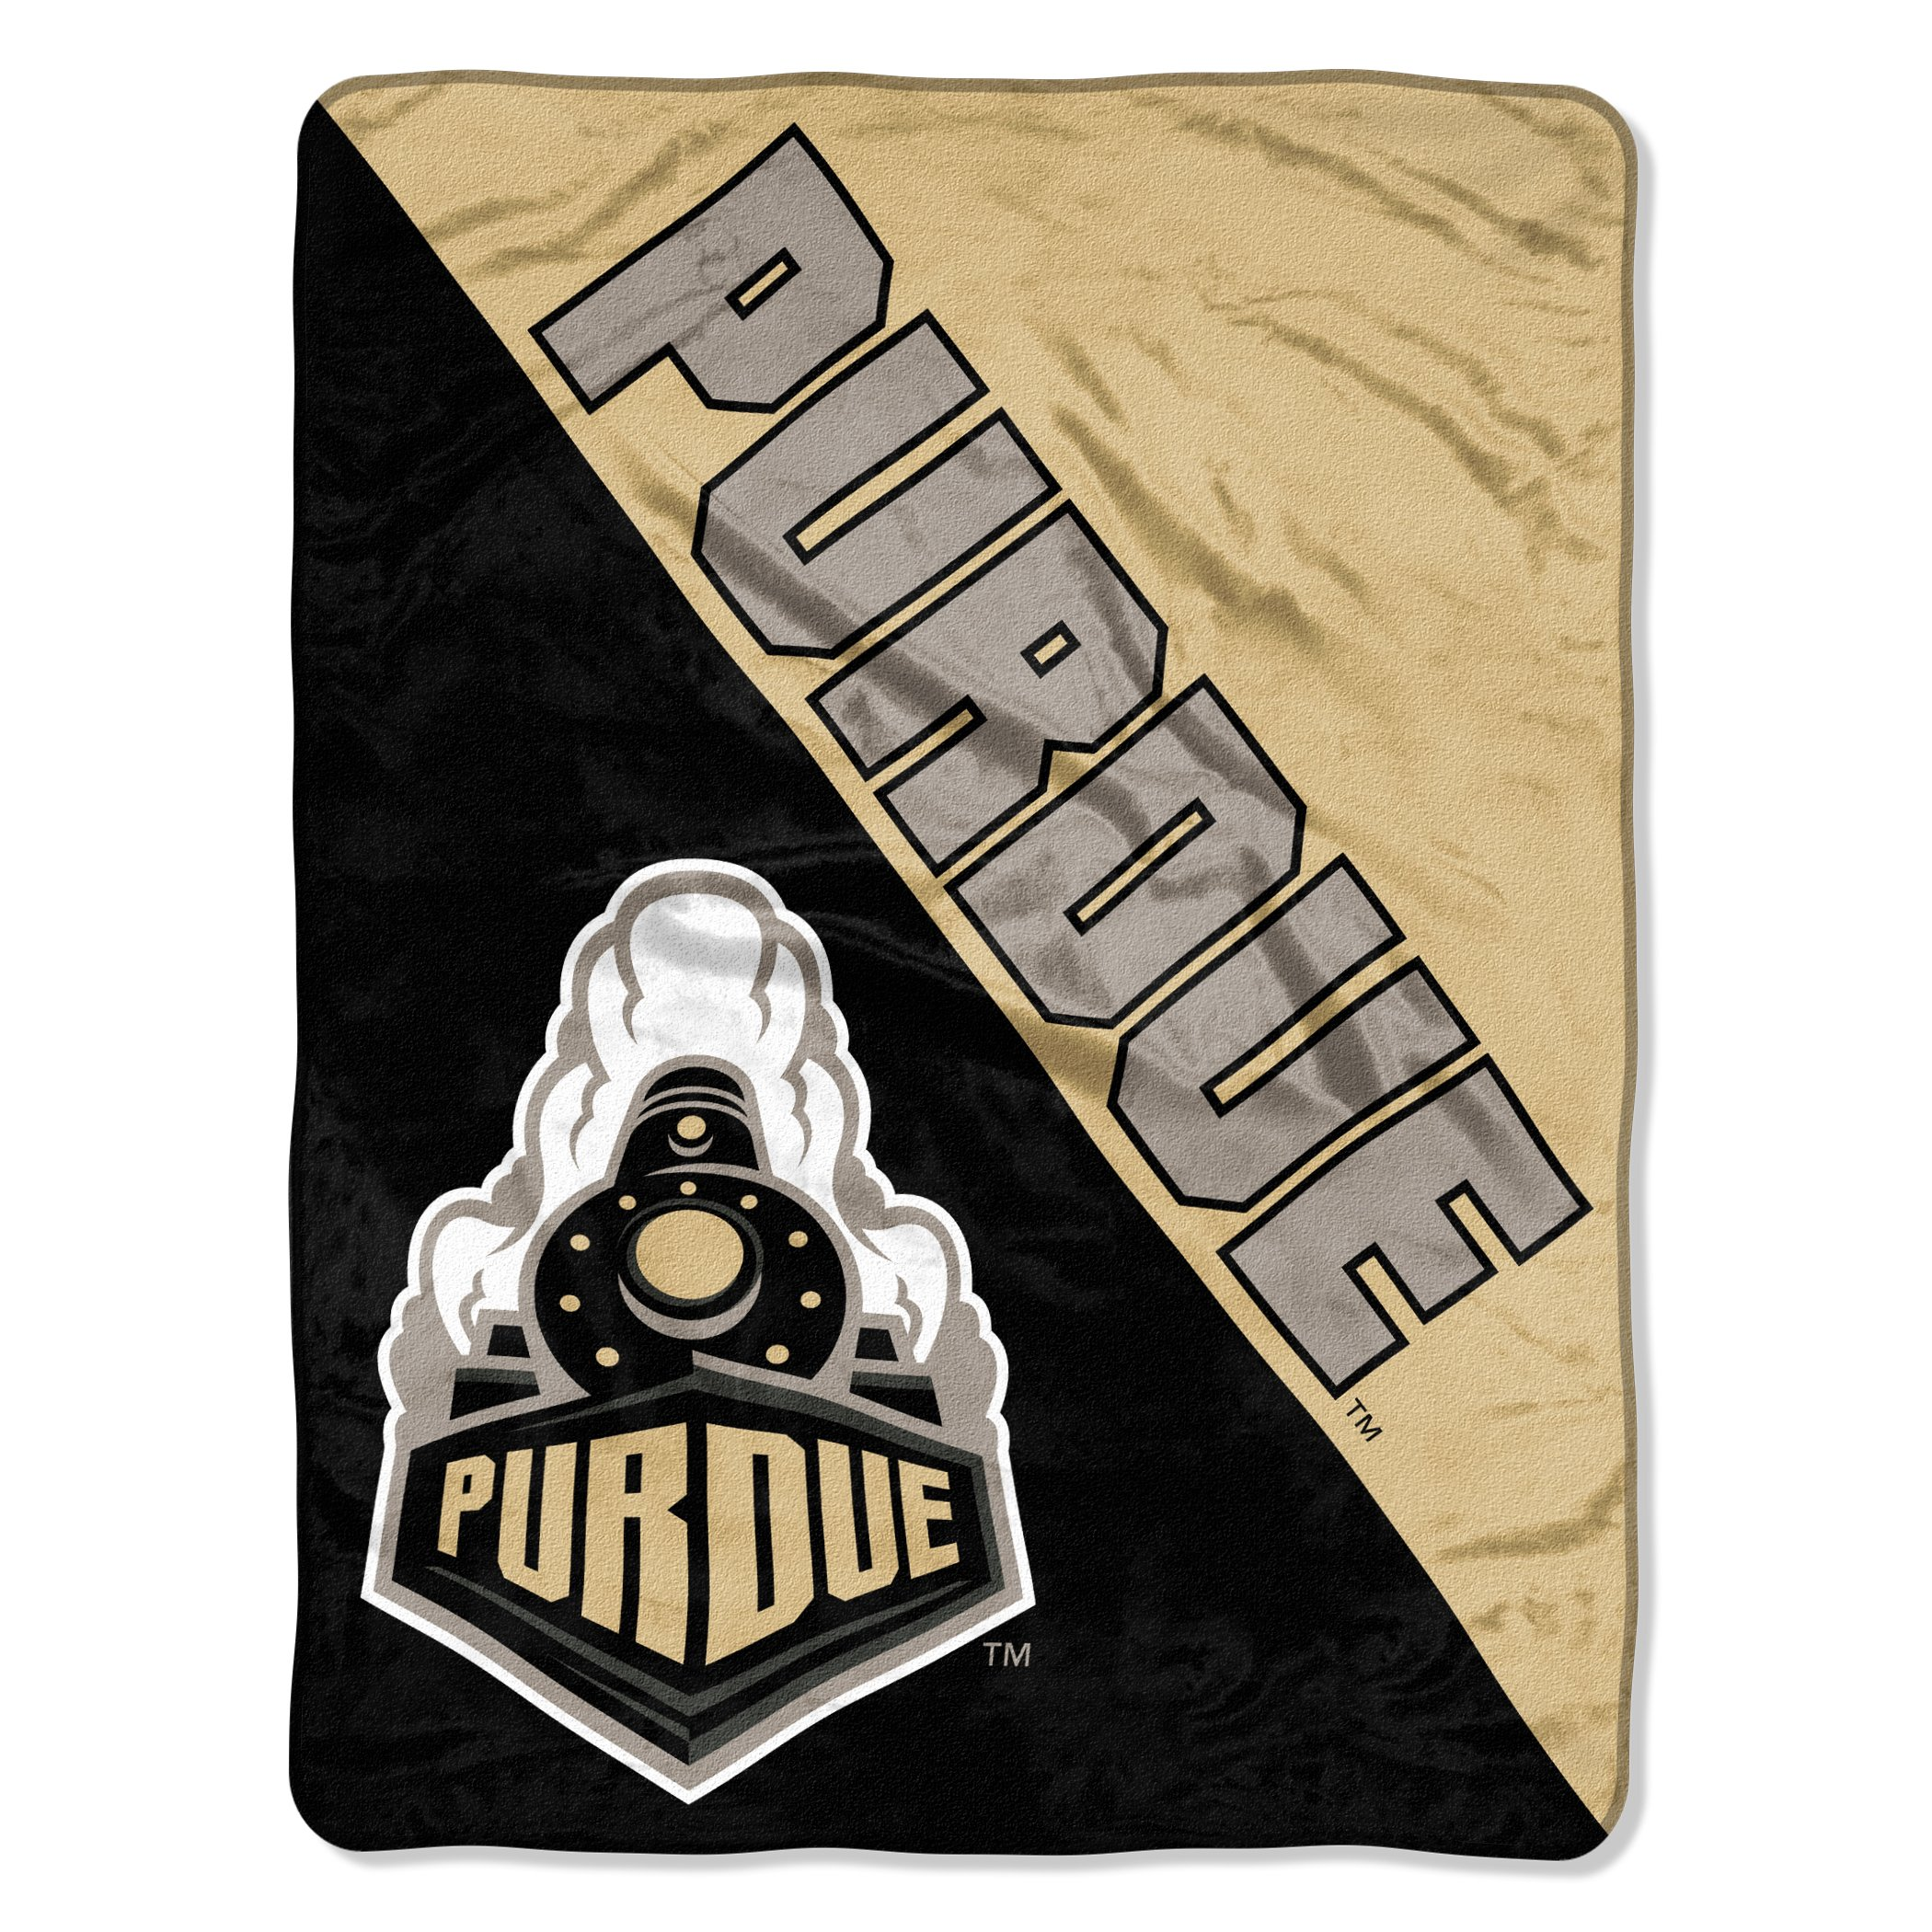 The Northwest Company Officially Licensed NCAA Purdue Boilermakers Halftone Micro Raschel Throw Blanket, 46'' x 60'', Multi Color by The Northwest Company